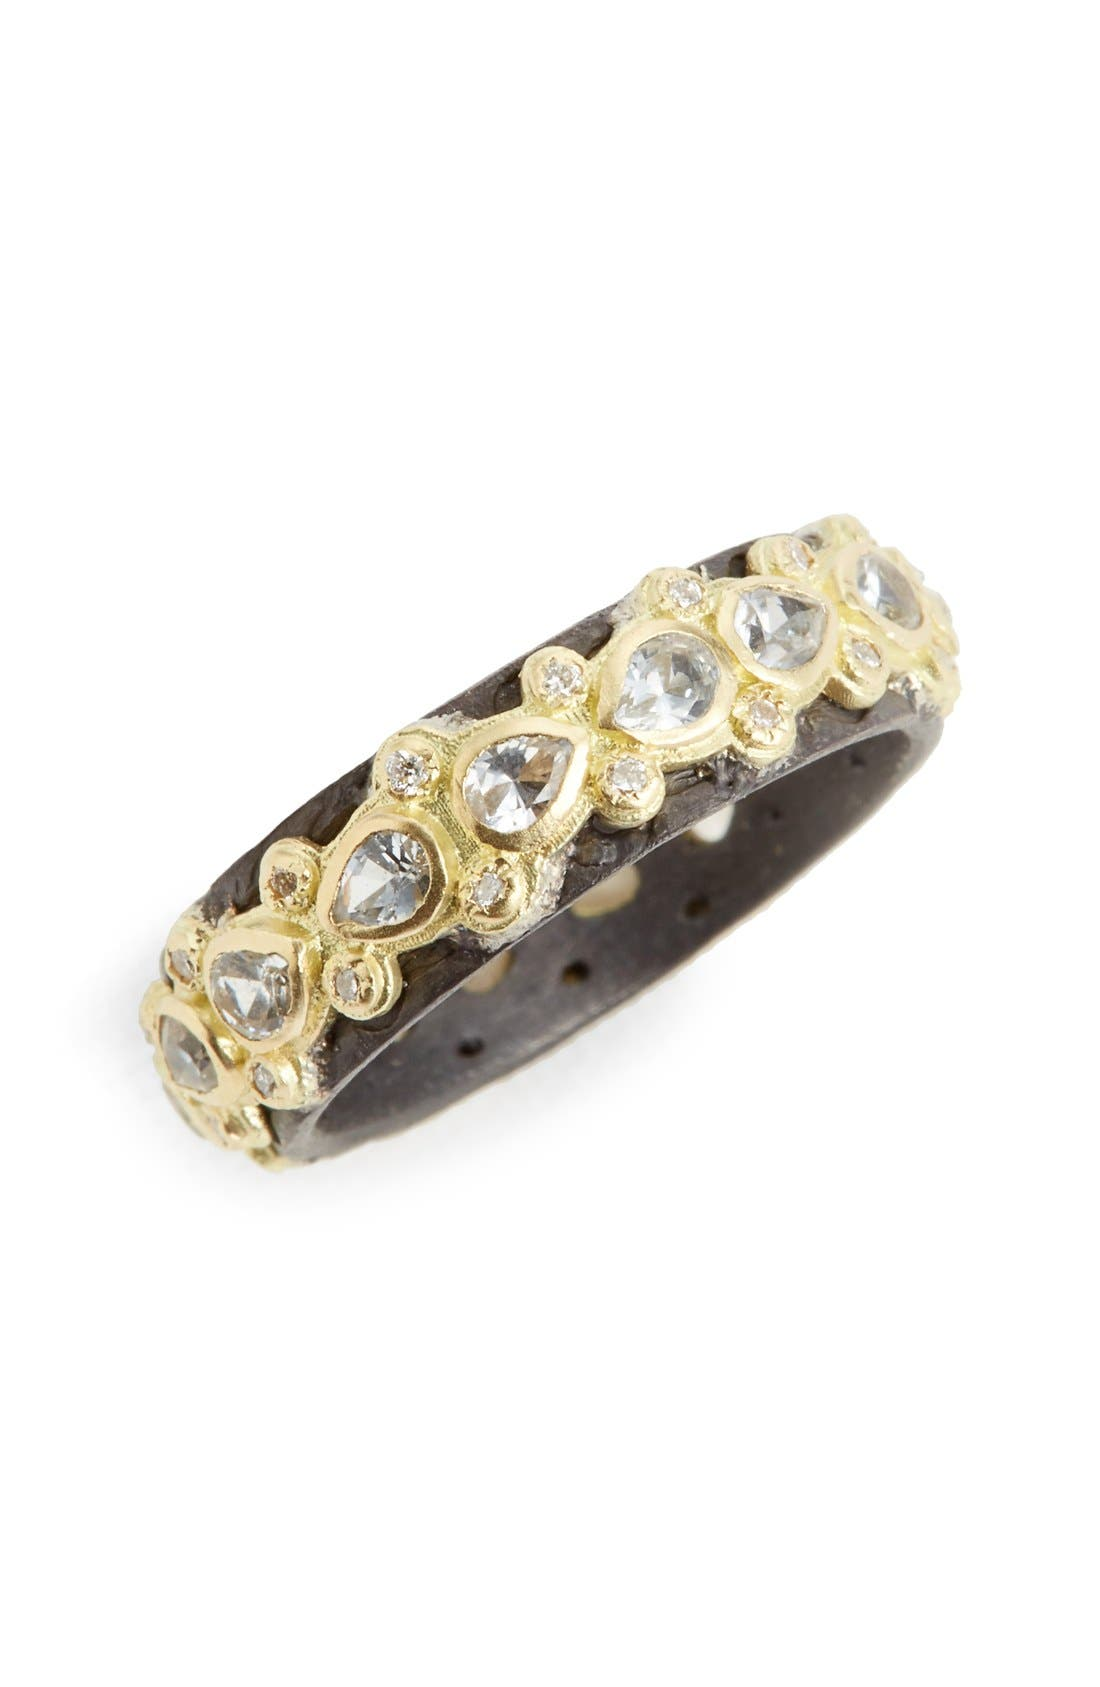 Old World Lacy Eternity Diamond & Sapphire Ring,                             Main thumbnail 1, color,                             GOLD